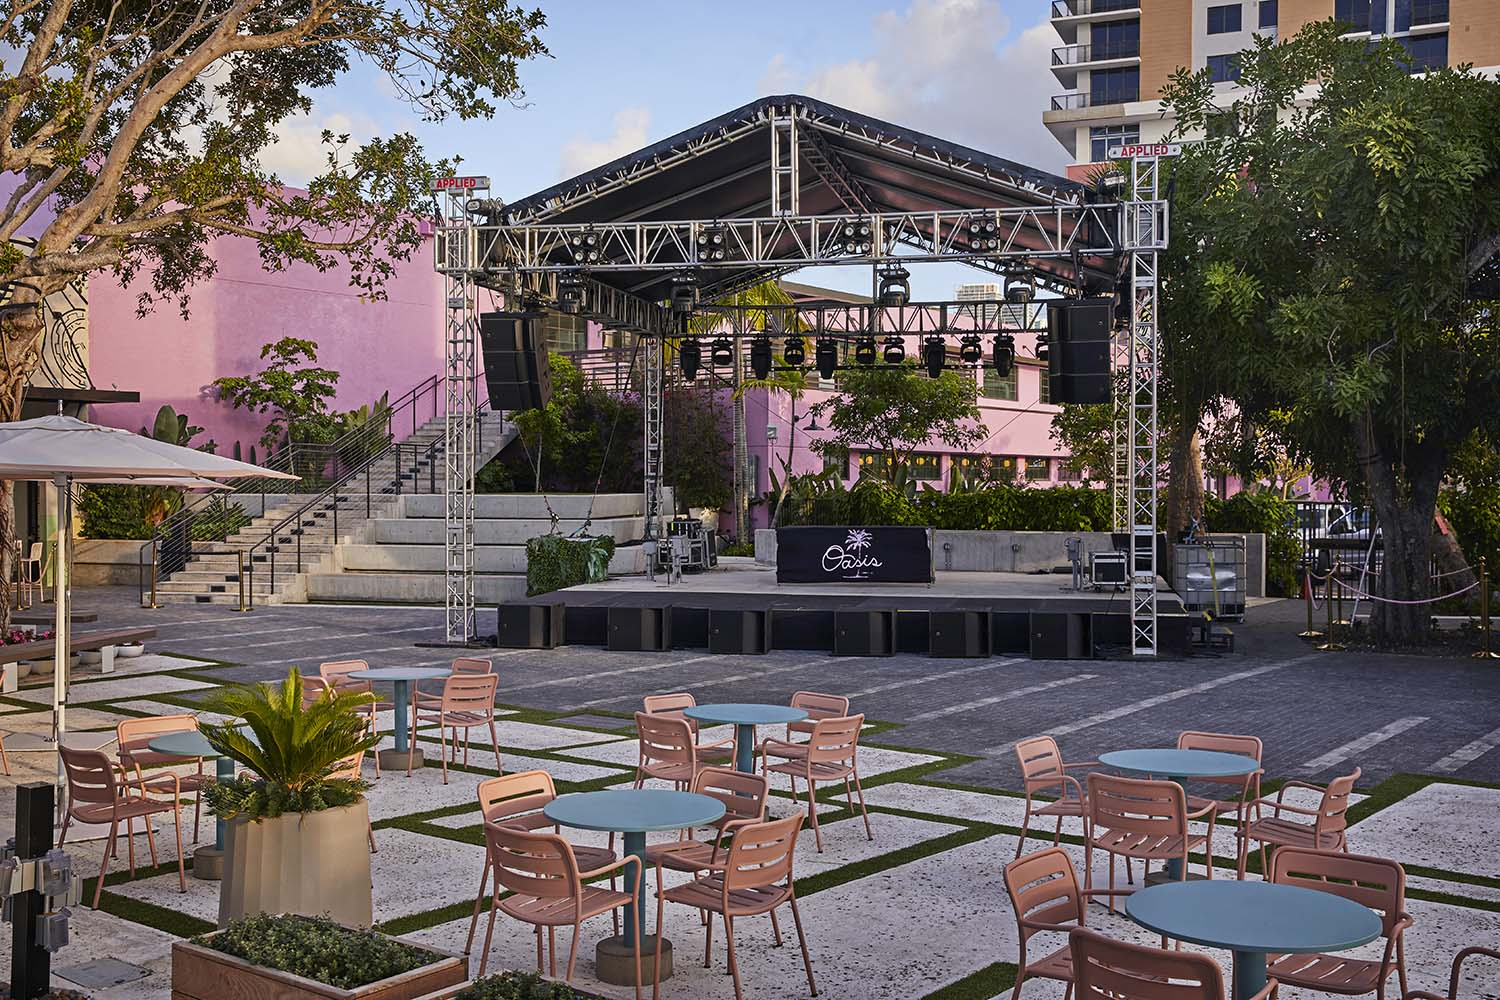 The Oasis Wynwood Miami Food, Drink and Culture Destination